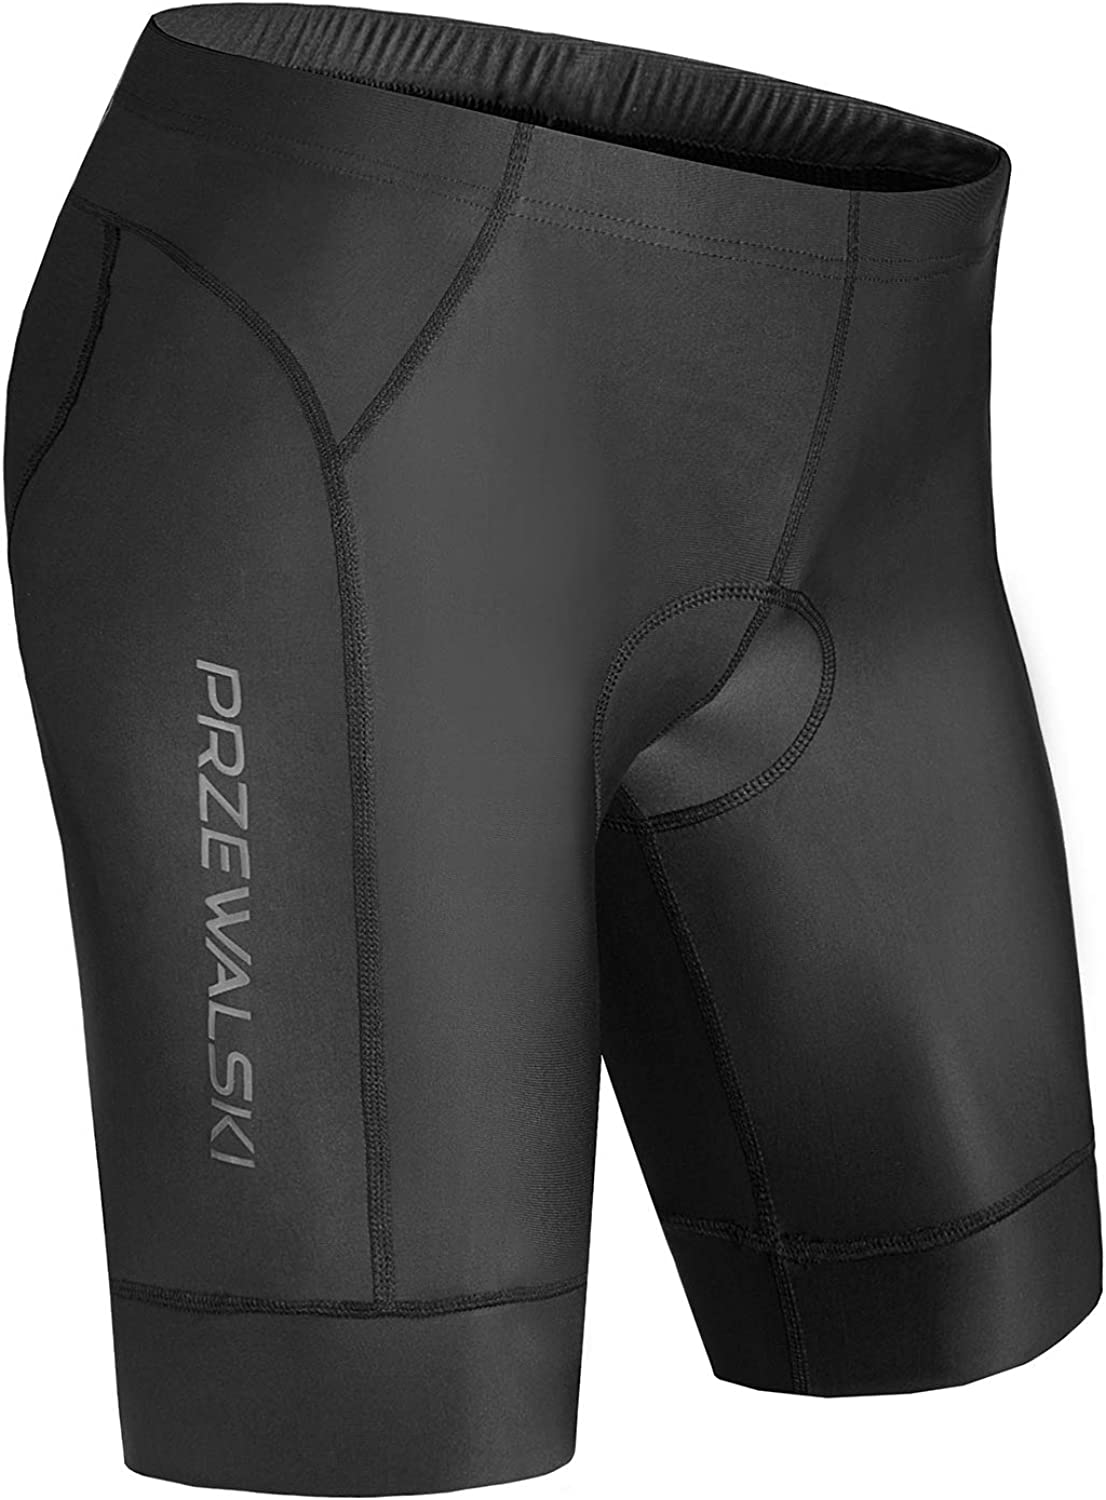 Breathable /& Lightweight MTB Biking Underwear Pants with Anti-Slip Leg Grips Mens Cycling Shorts with 4D Padded